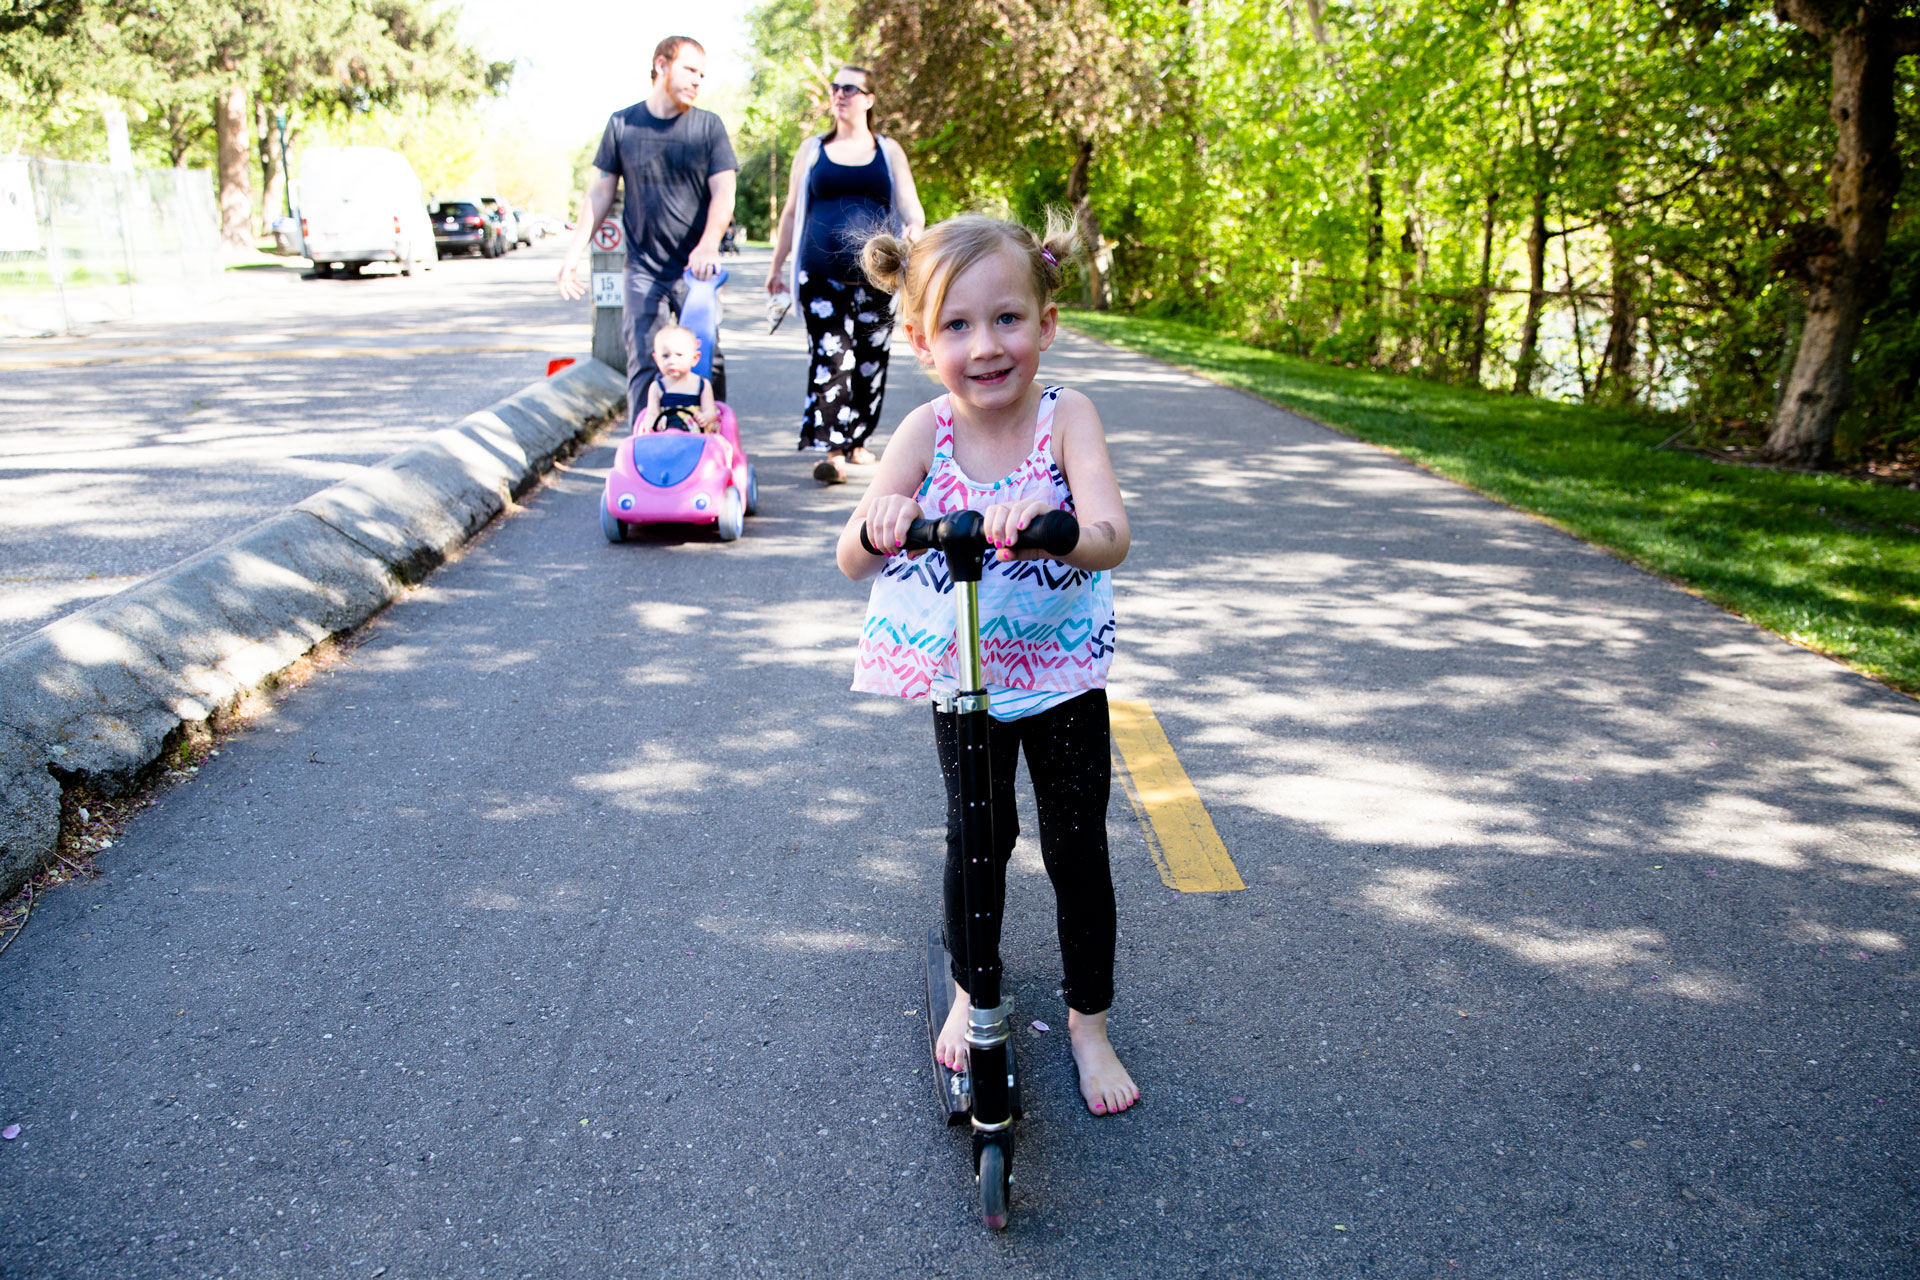 Girl riding scooter on the greenbelt while her parents push her sister in a car stroller behind her